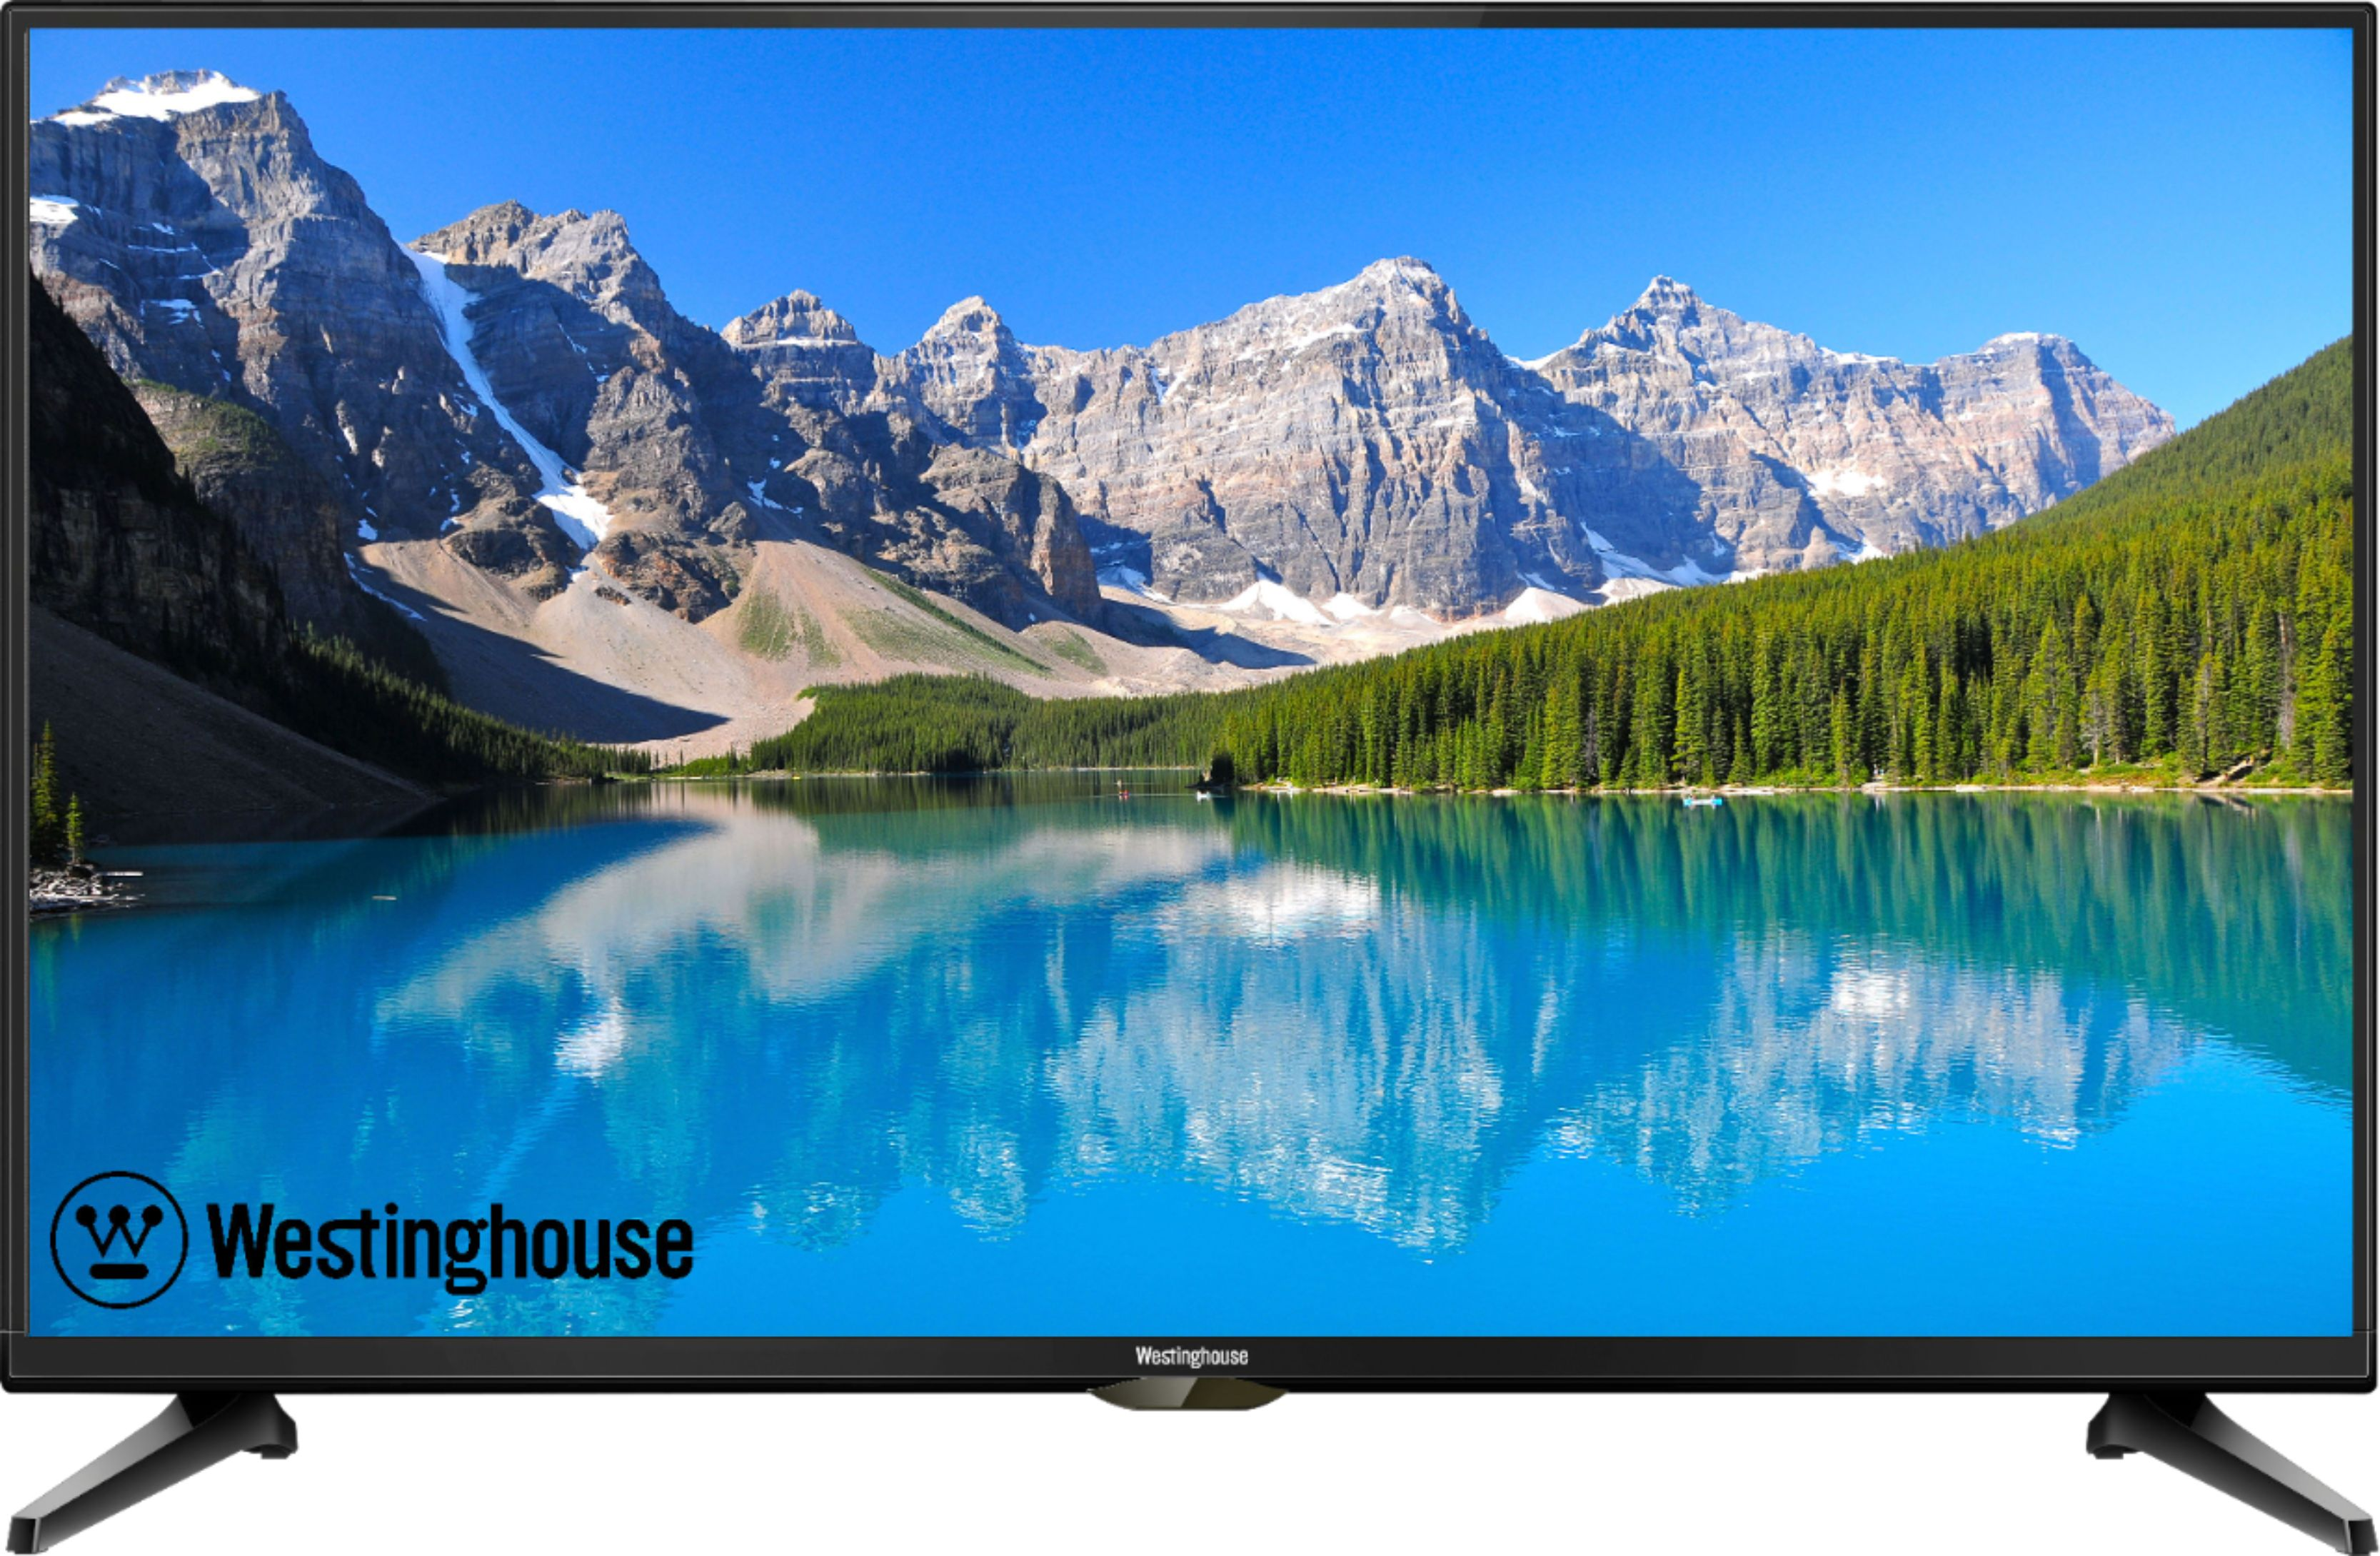 "Tv Uhd 4k Best Buy: Westinghouse 55"" Class Led 2160p Smart 4k Uhd Tv"